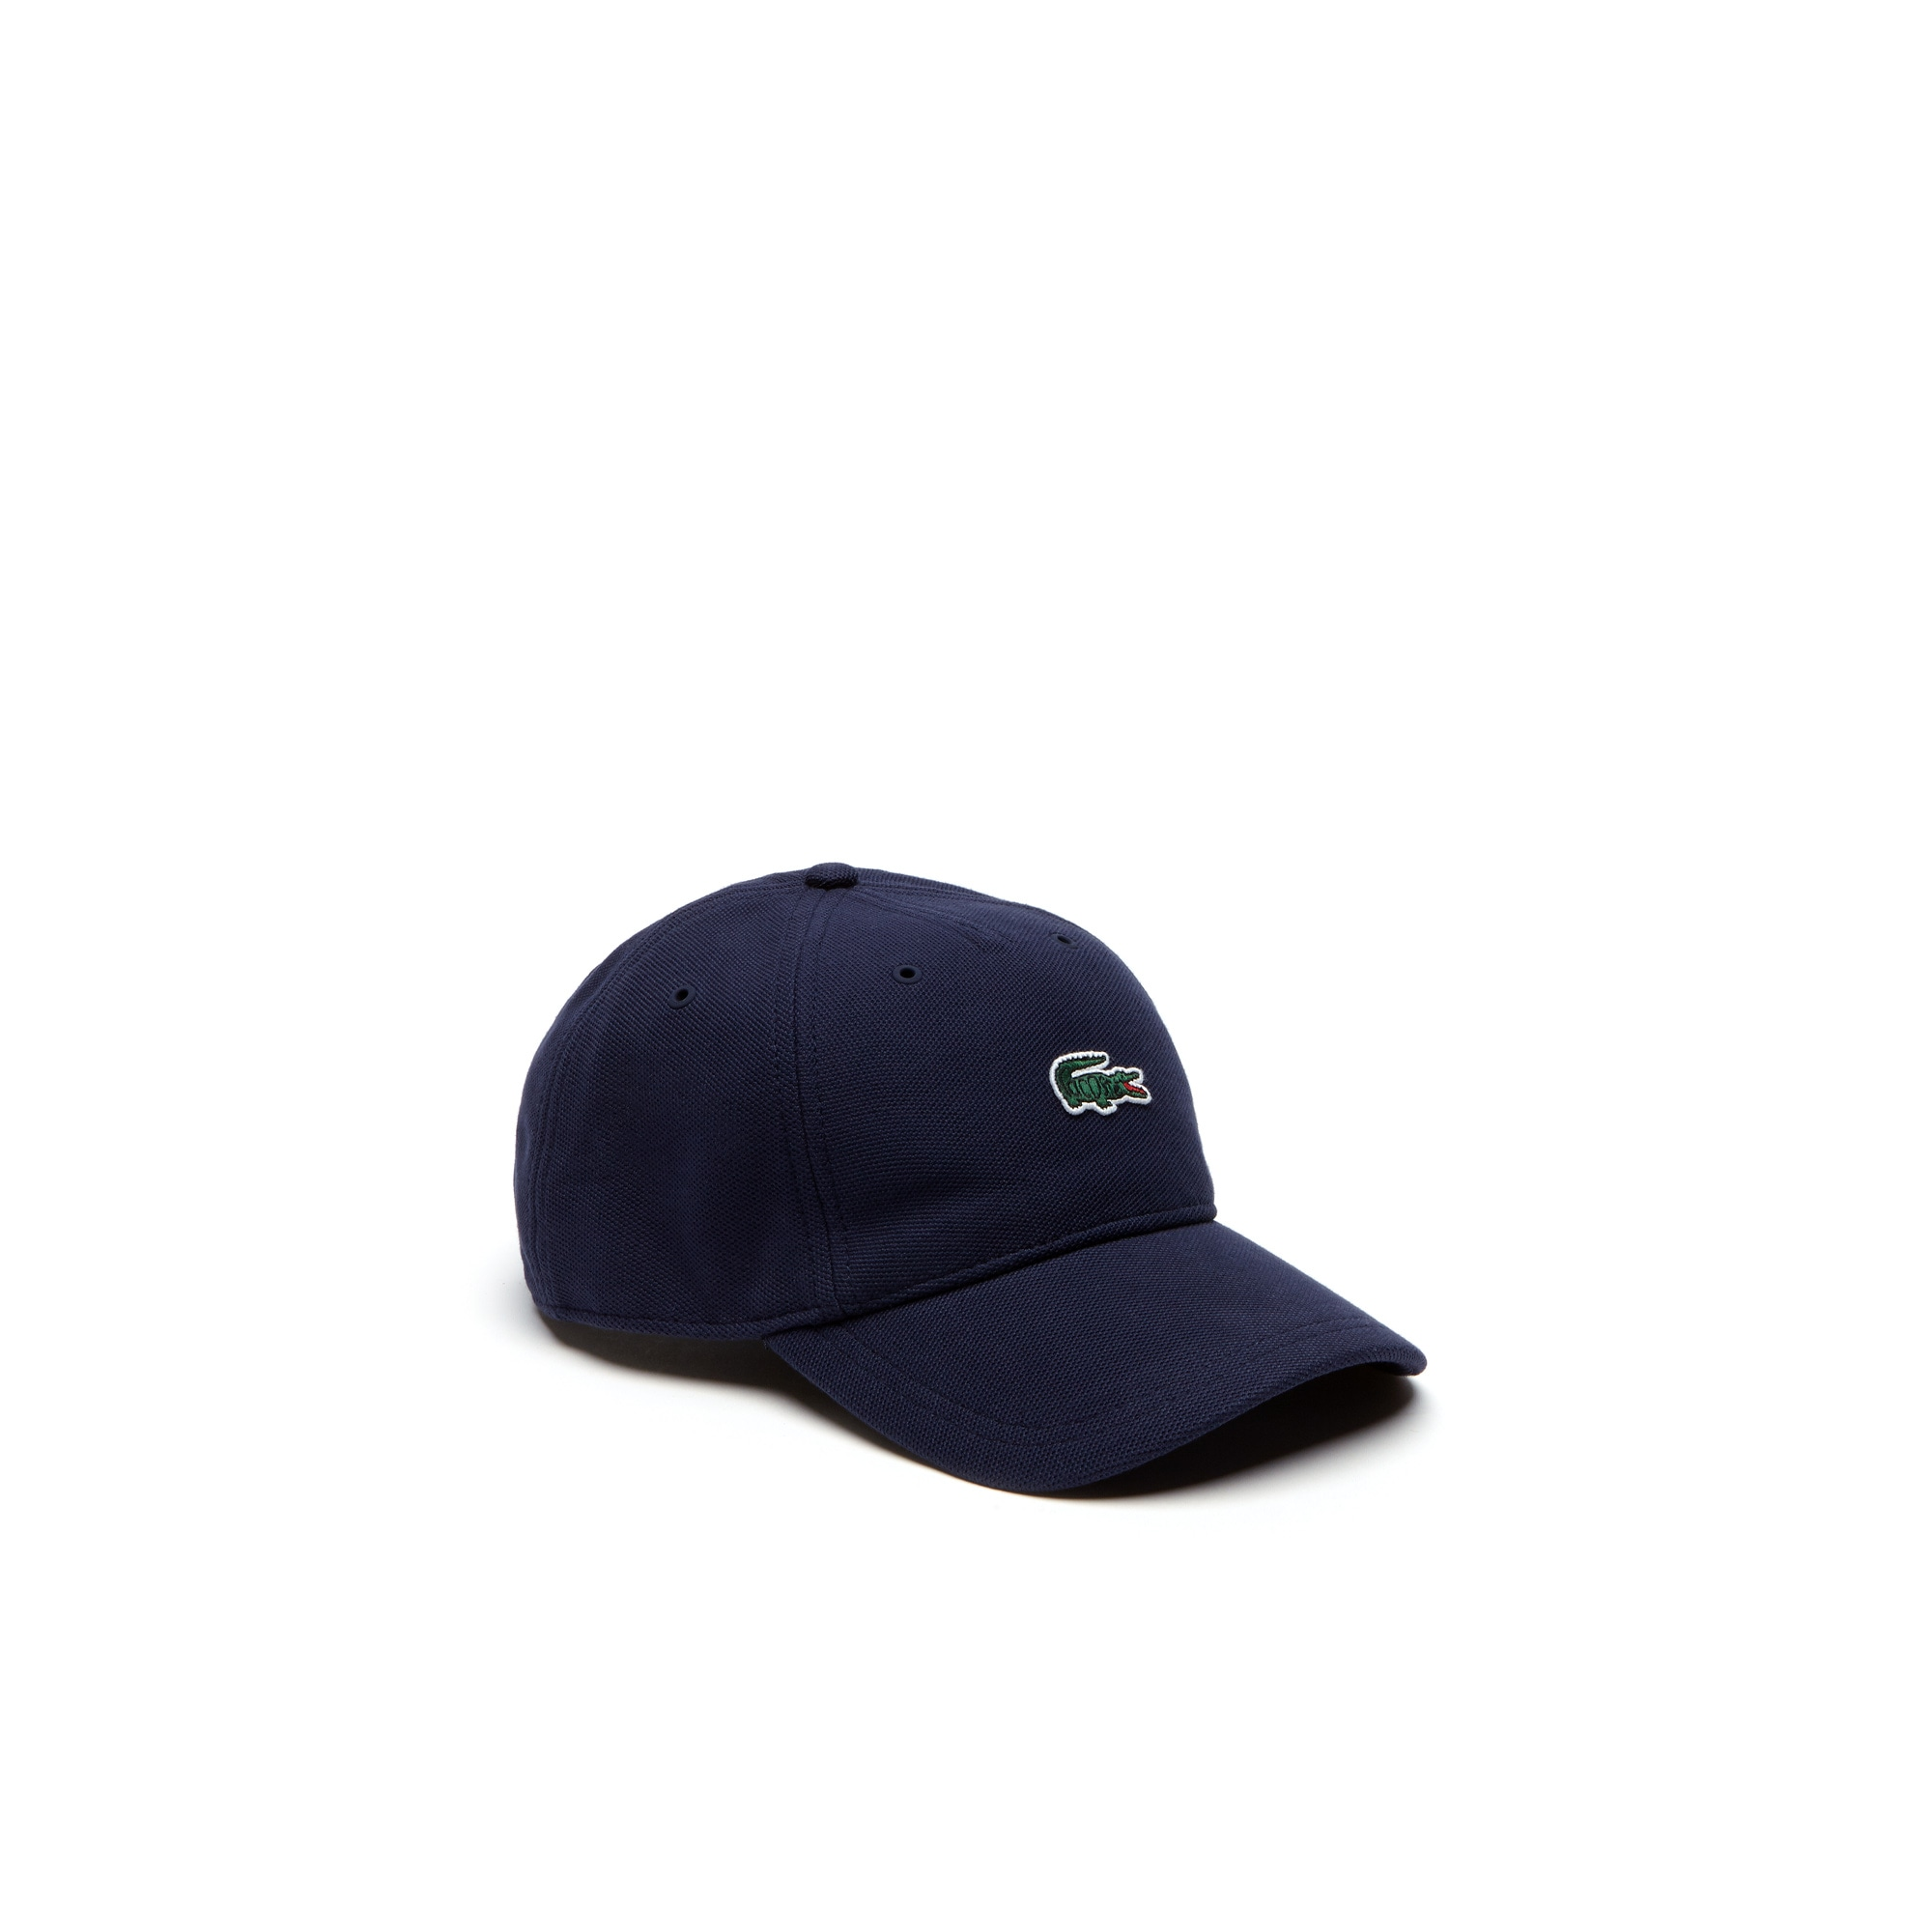 Men's Crocodile Patch Piqué Cap